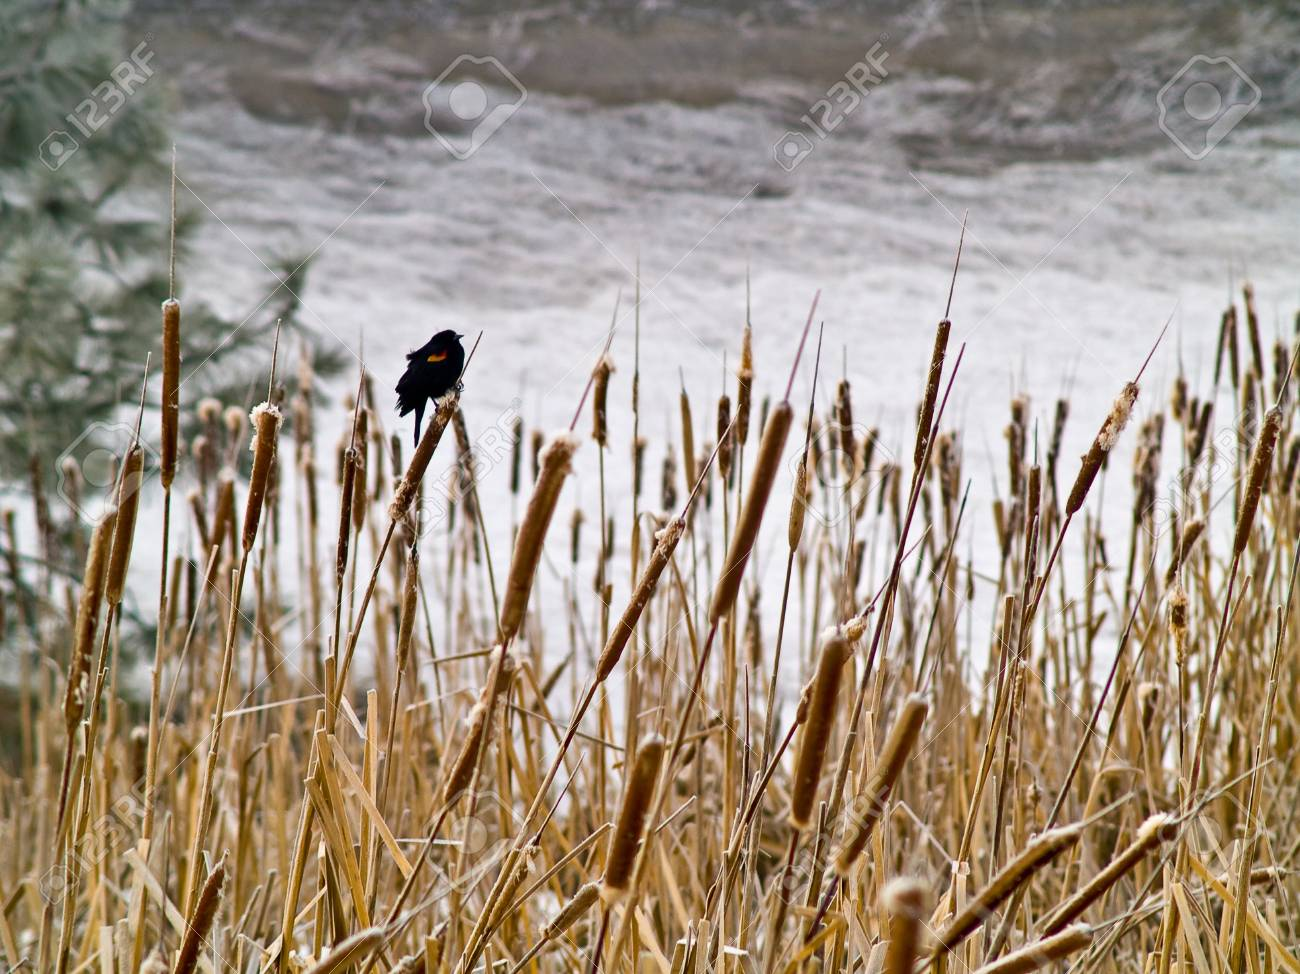 Red Winged Blackbird in a Frozen Marsh Area on an Overcast Day Stock Photo - 8275007